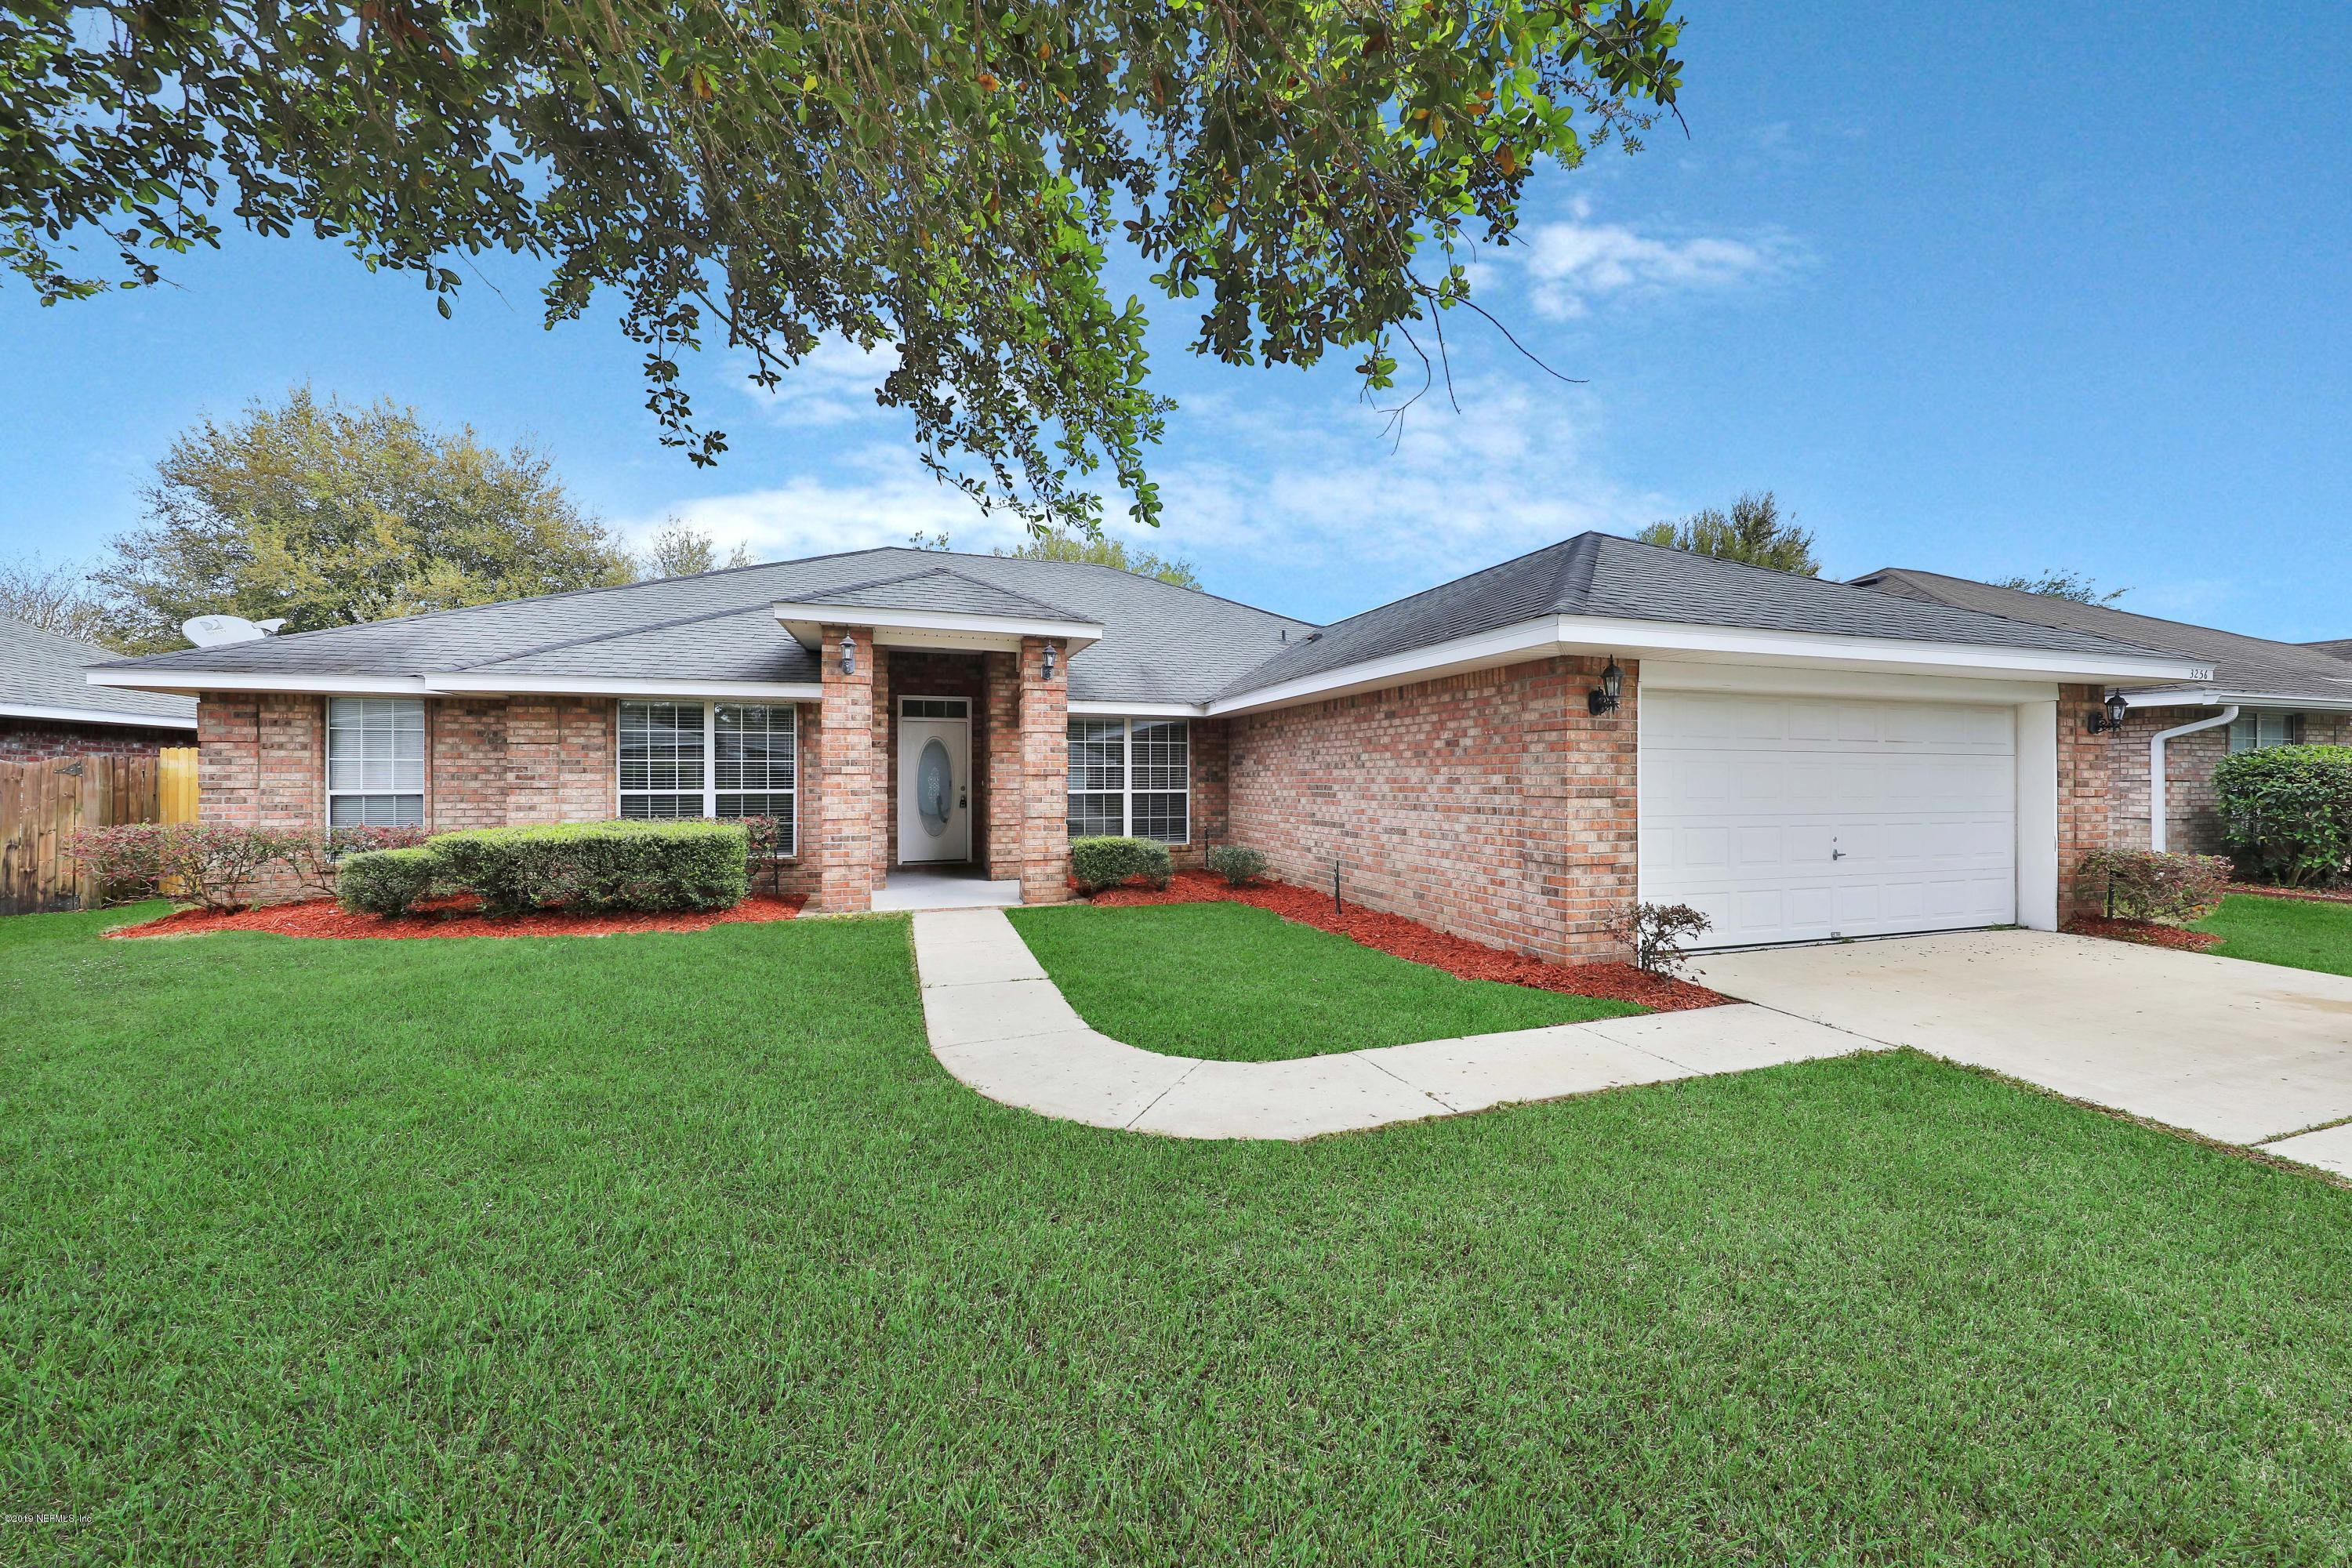 3256 SILVERADO, GREEN COVE SPRINGS, FLORIDA 32043, 4 Bedrooms Bedrooms, ,2 BathroomsBathrooms,Residential - single family,For sale,SILVERADO,987443